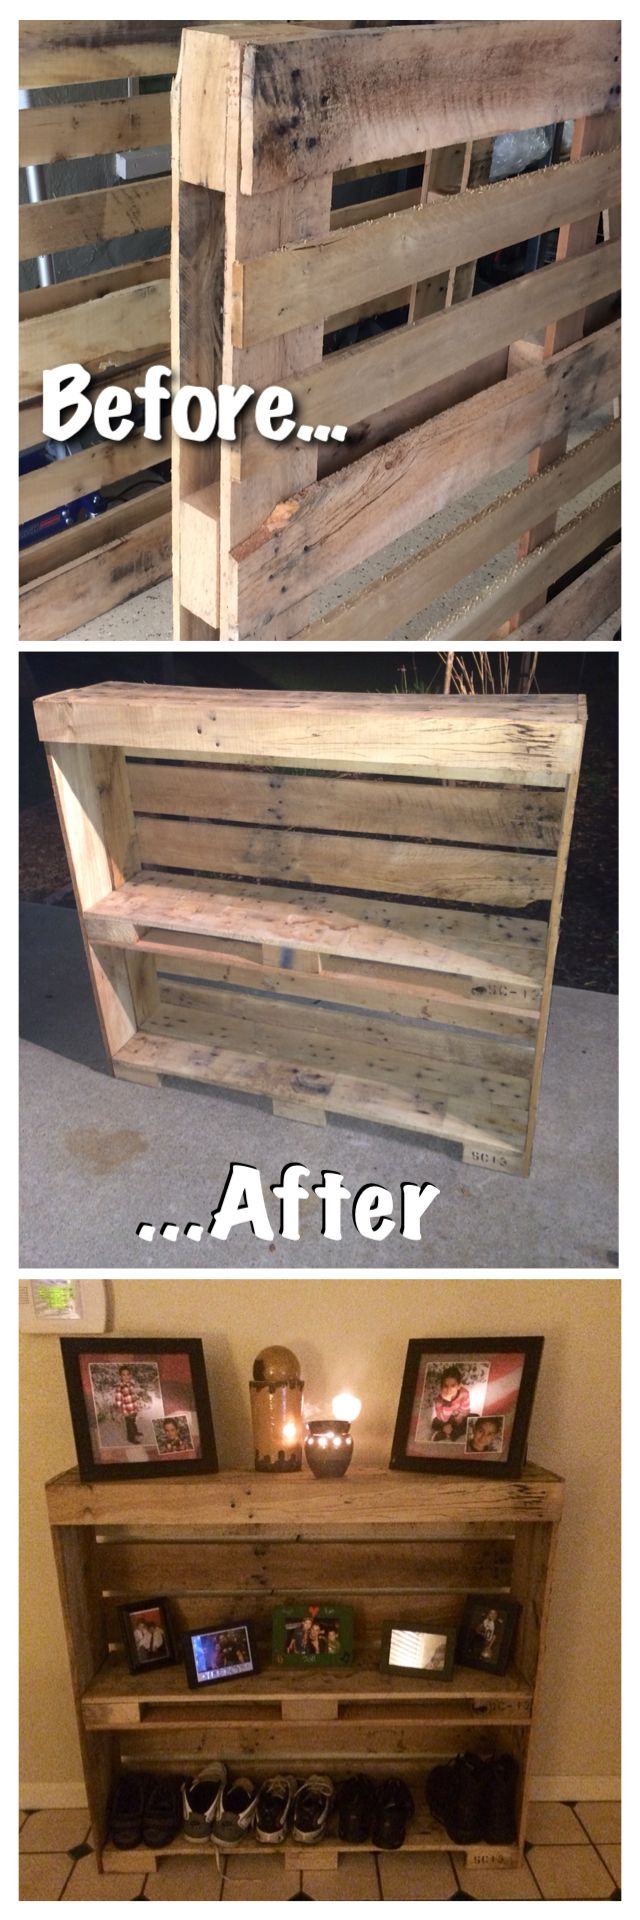 Pallet Entry Table Pallet Entry Table Reclaimed And Up Cycled Pallet Project